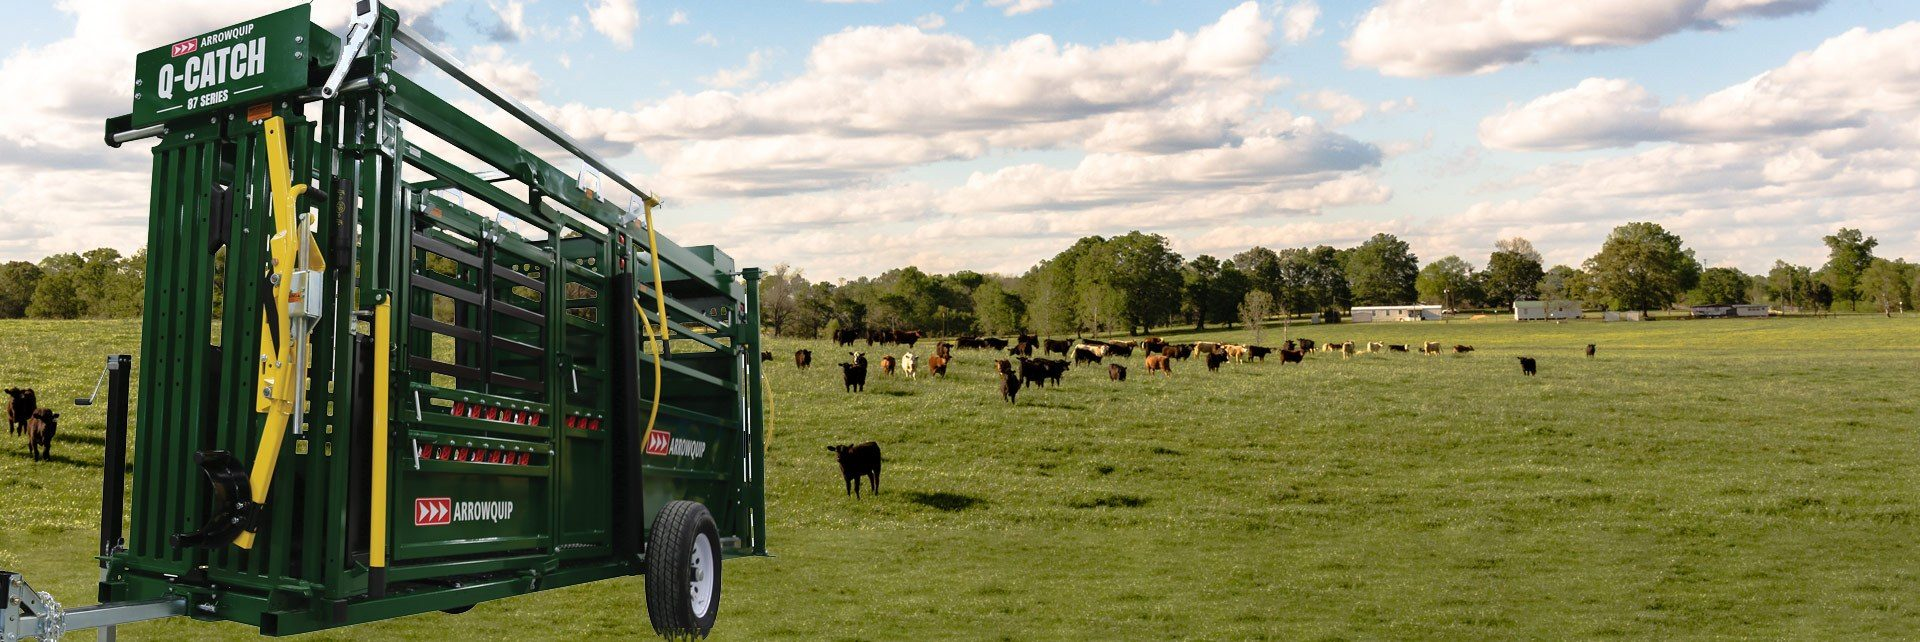 Arrowquip's mobile cattle crush and race in a field with cows